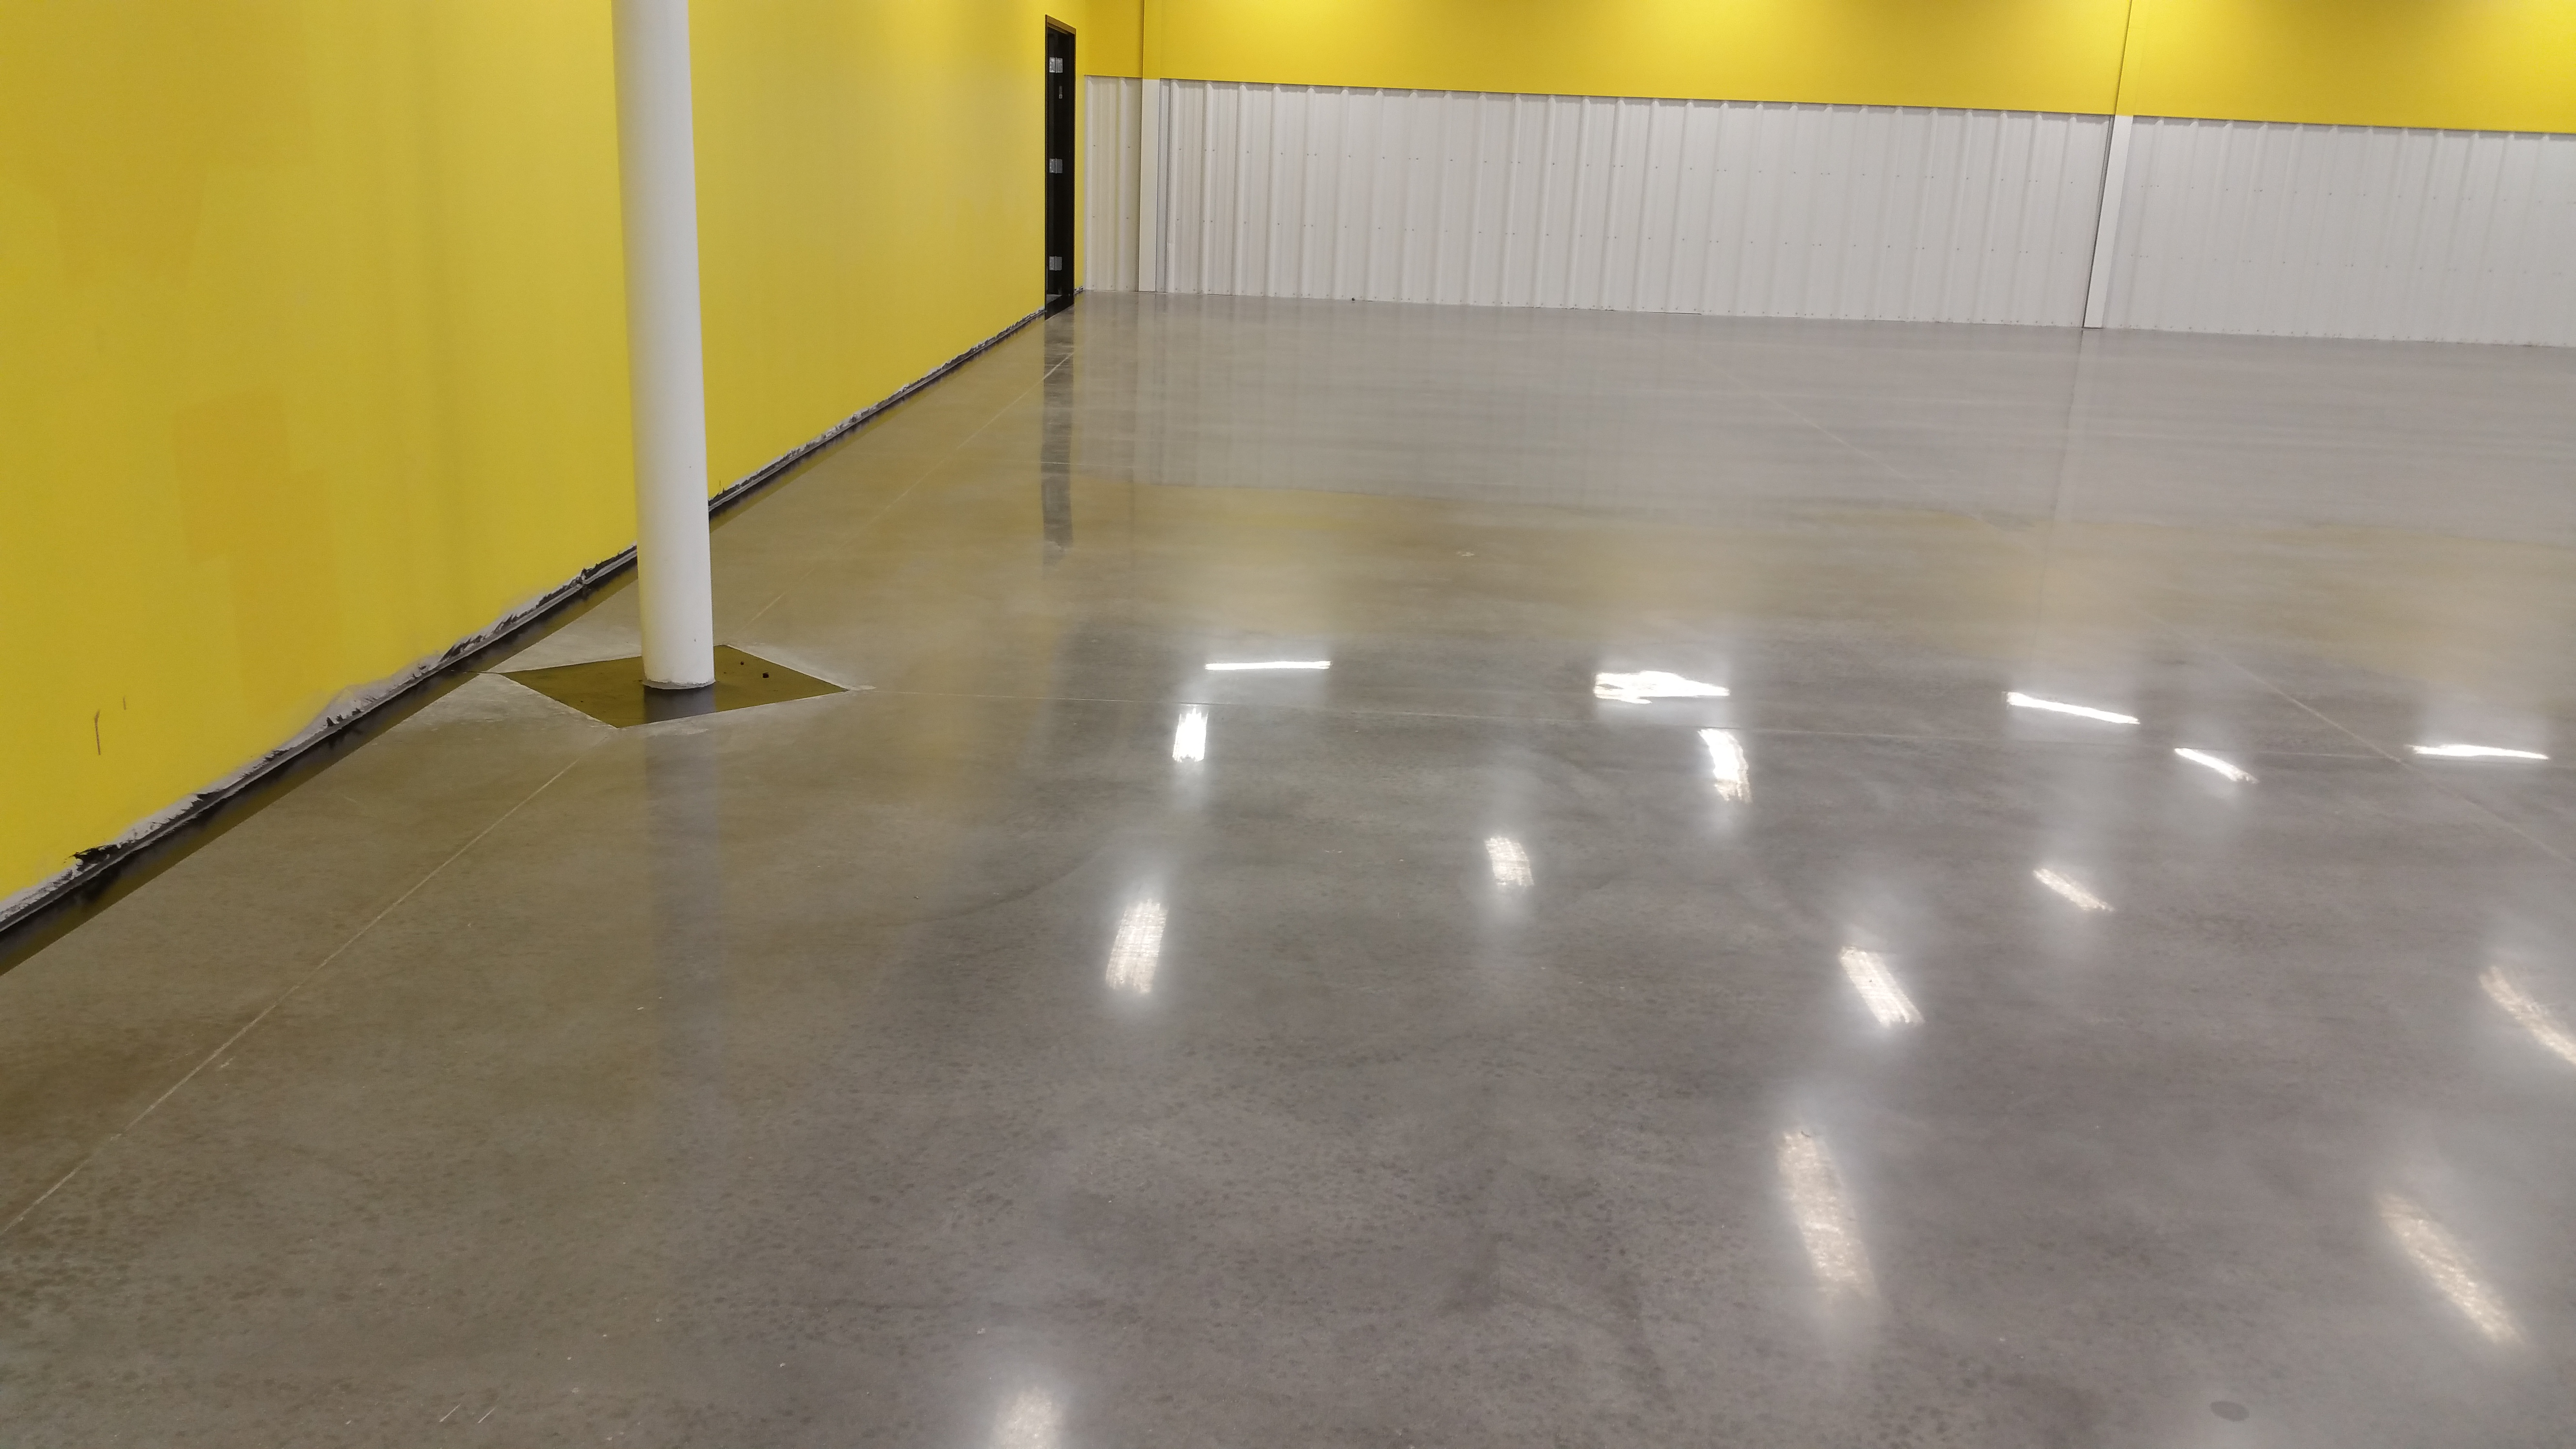 Overhead lights reflect off a polished cement floor.